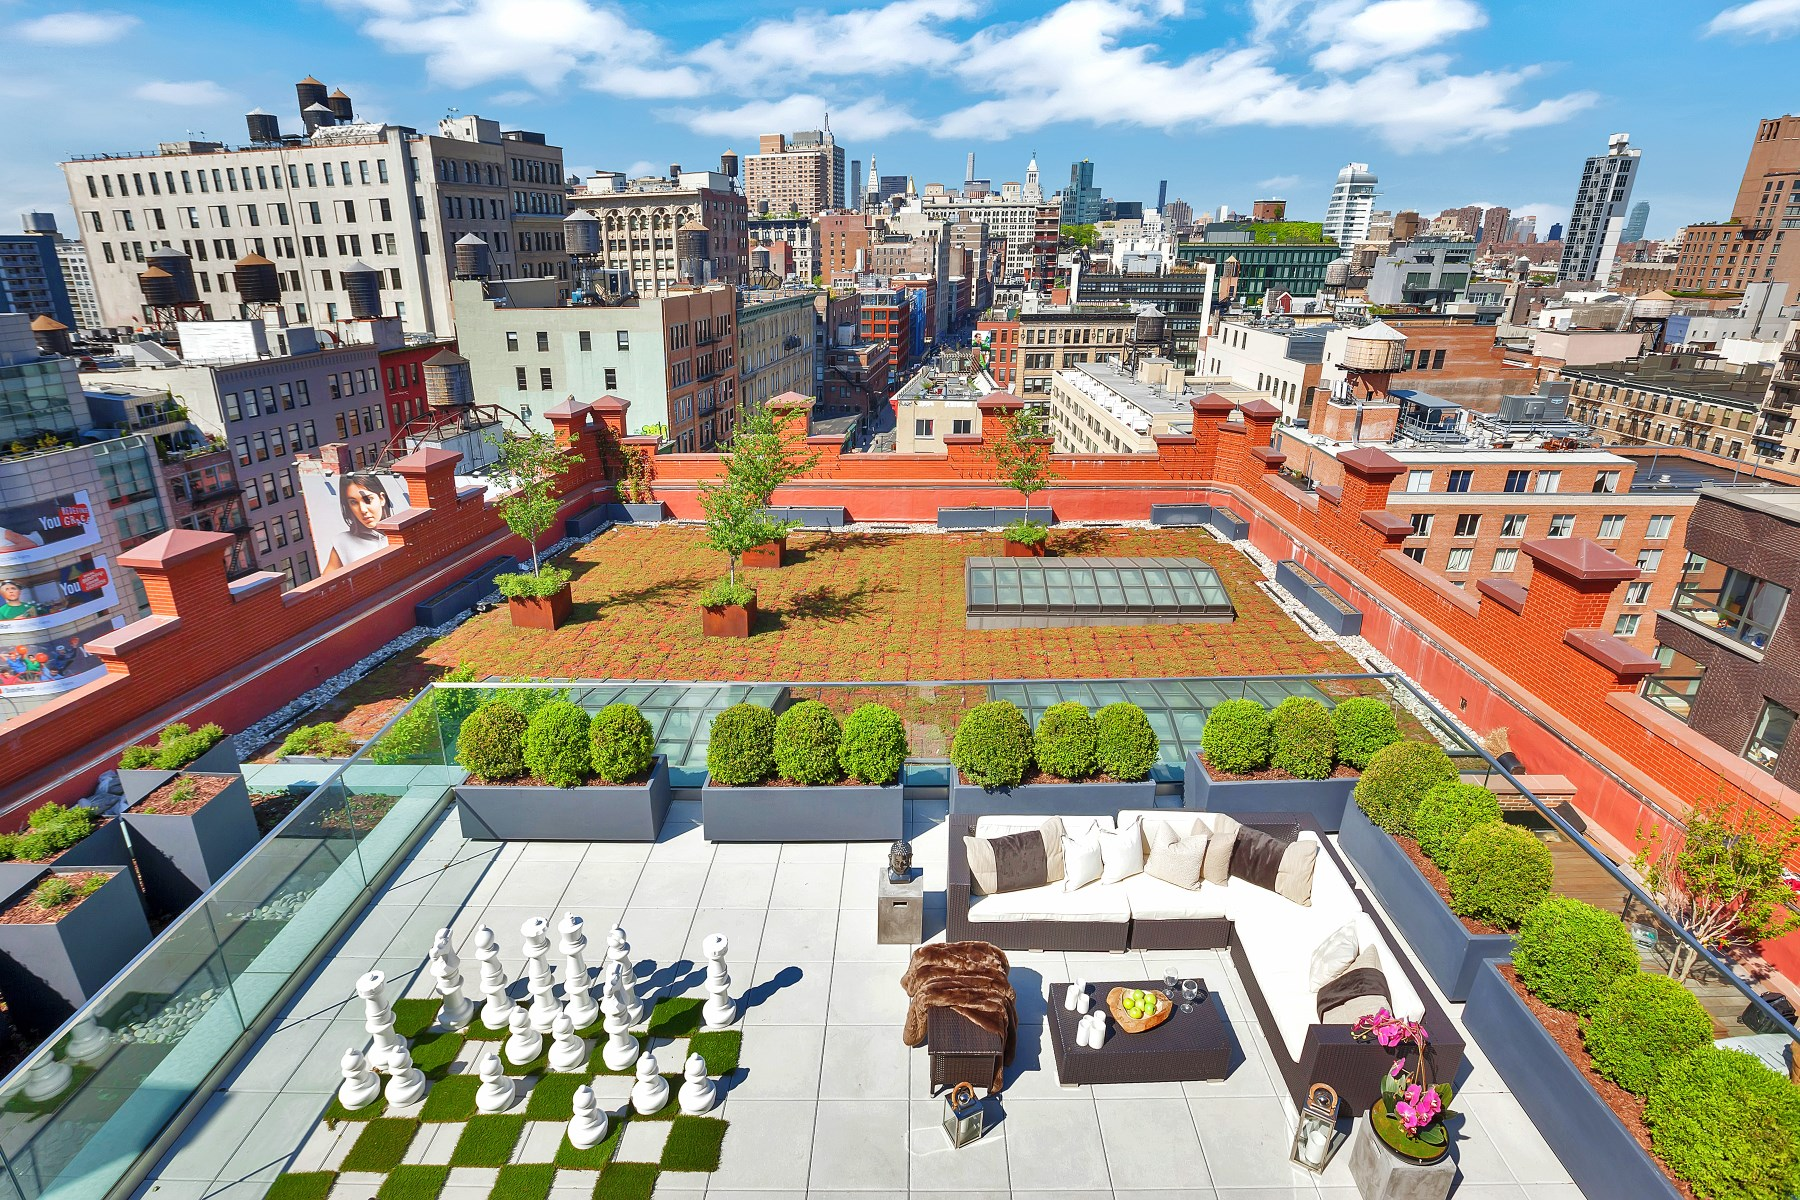 Single Family Home for Sale at Puck Penthouses, PH II 293 Lafayette Street Ph II Soho, New York, New York 10012 United States